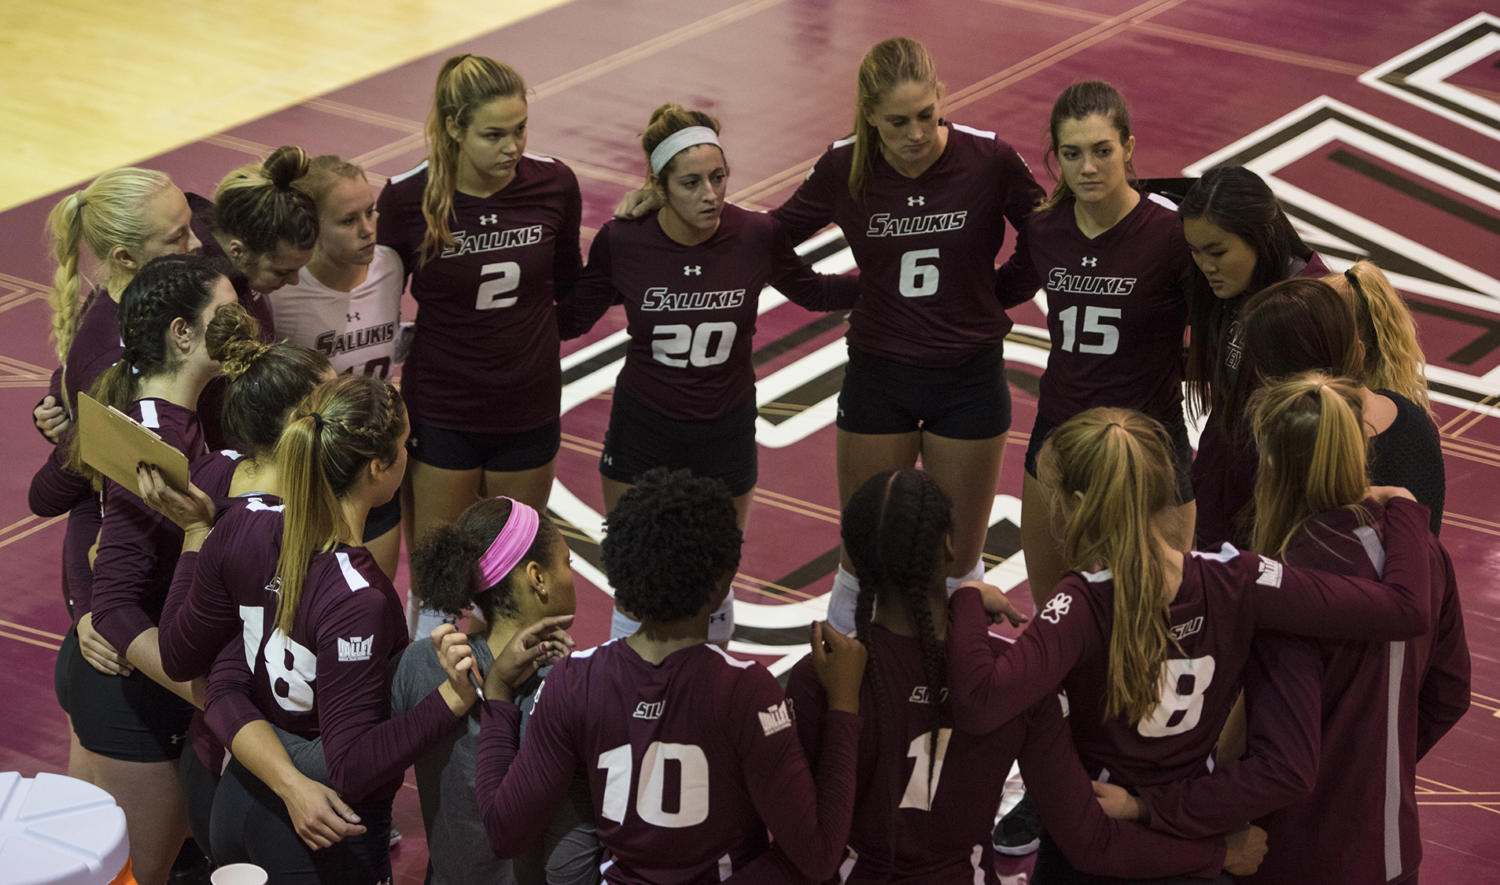 The SIU volleyball team listen to coach Kari Thompson Saturday, Sept. 30, 2017, during the Salukis' 4-1 loss to the University of Indiana Sycamores at Davies Gym. (Auston Mahan | @MahanAuston_DE)